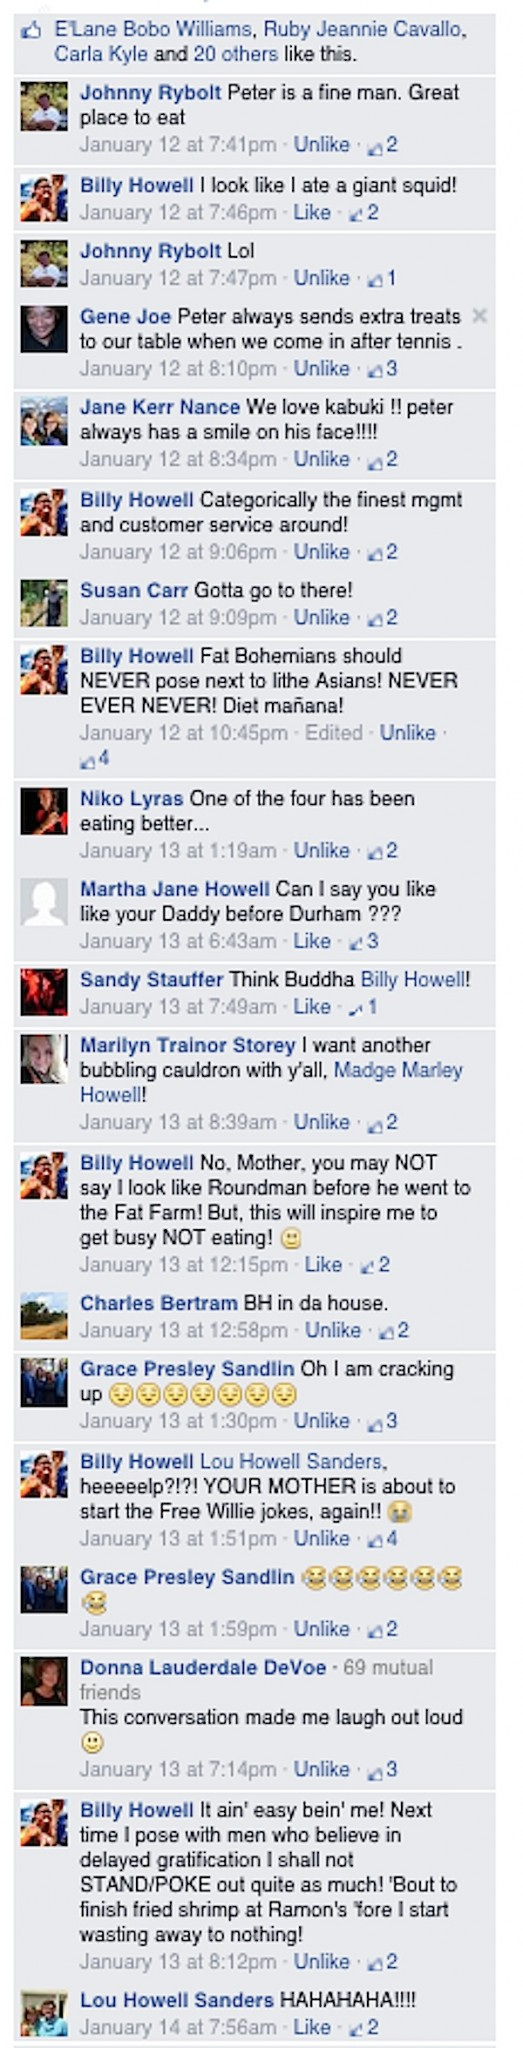 Facebook Comments with THE LITHE ORIENTALS photograph